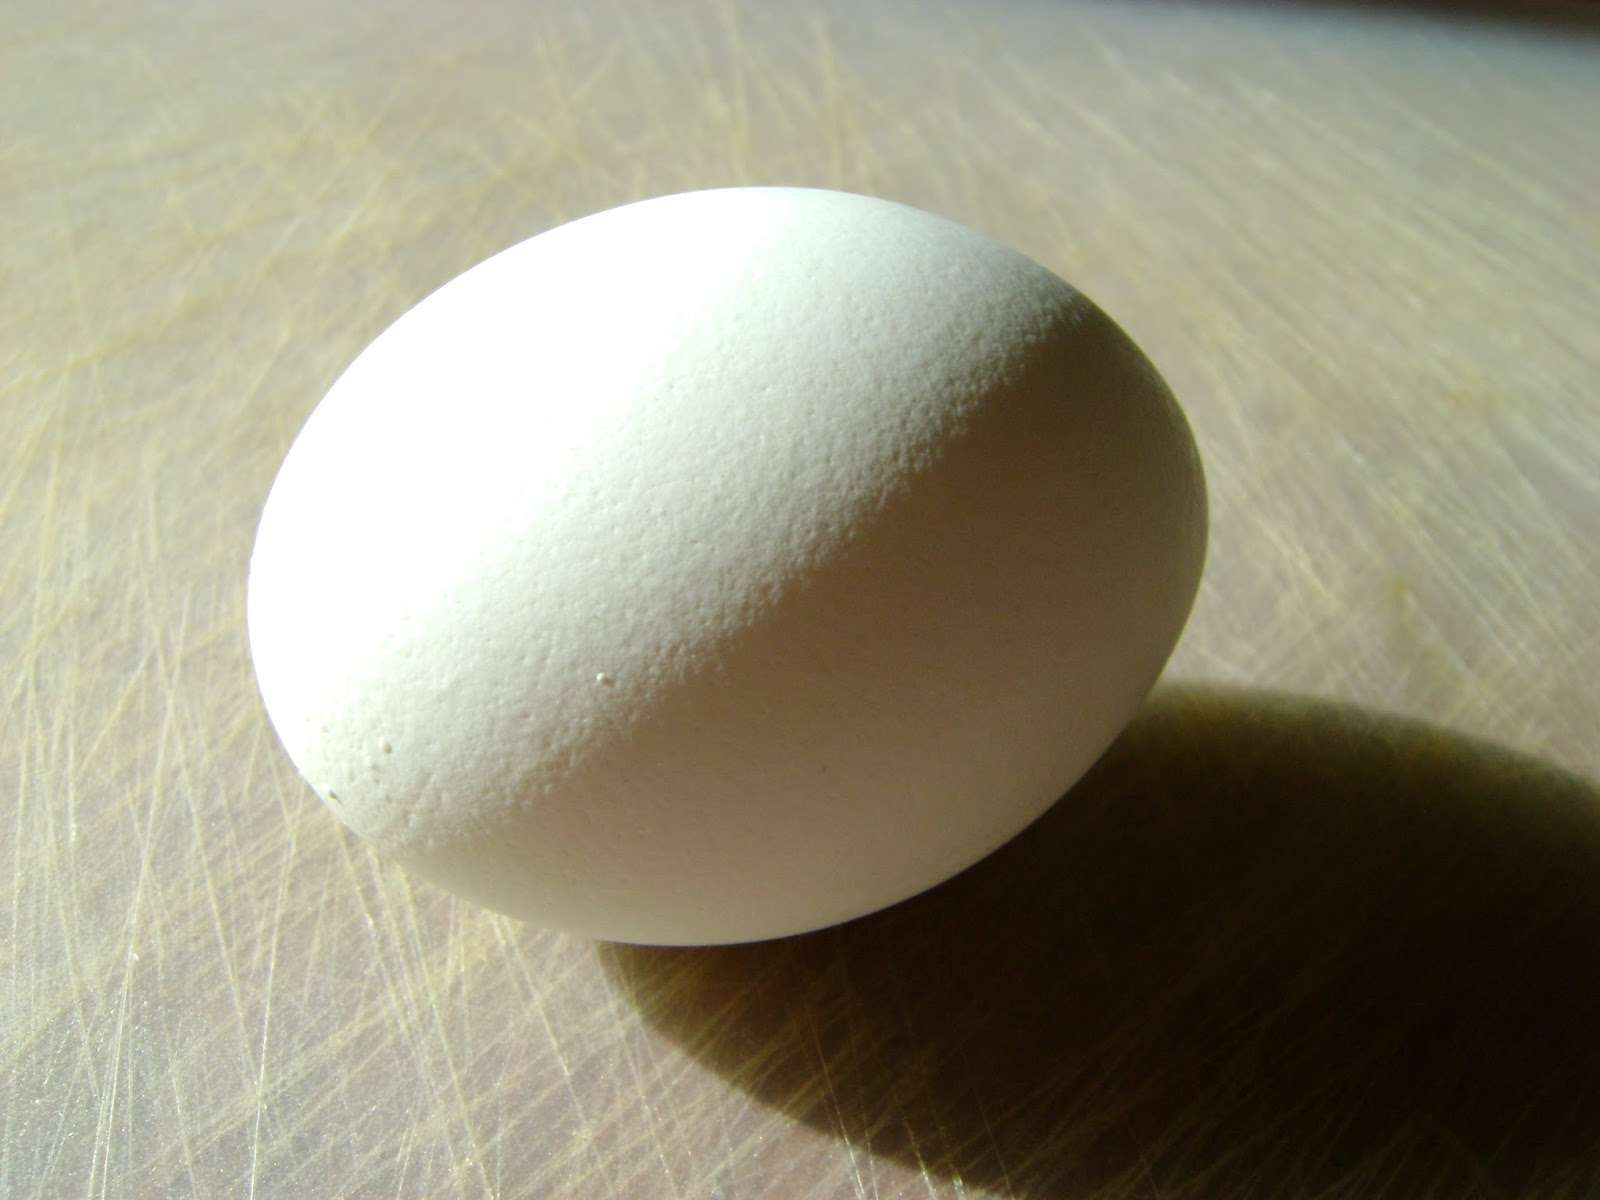 Daily Mixed Bag: Easy Way to Peel a Hard Boiled Egg